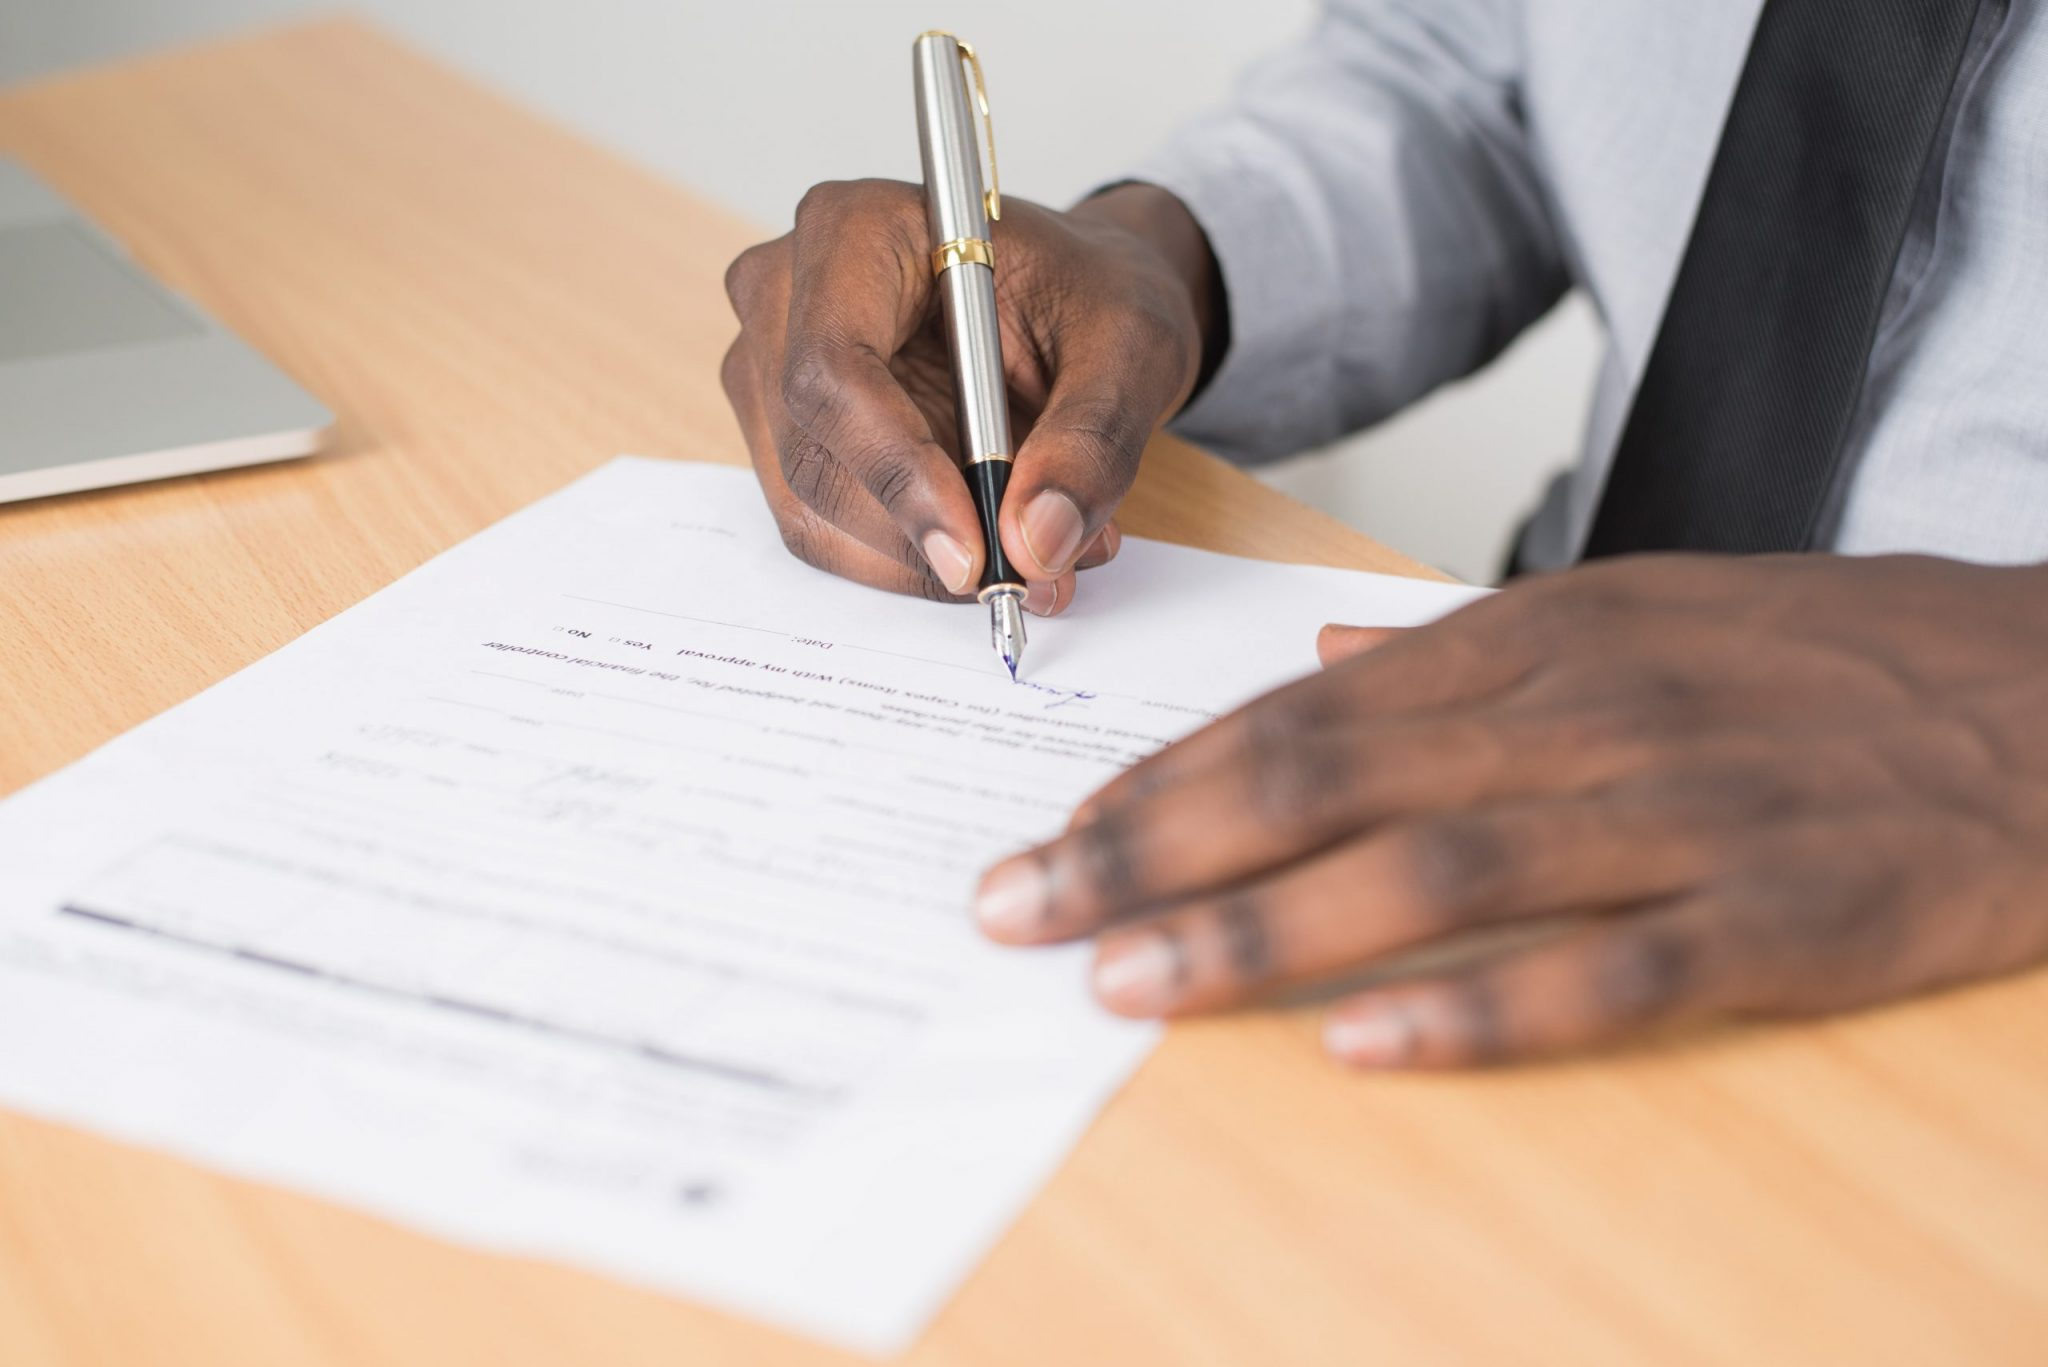 Why do I need an appraisal contingency in my purchaser's contract